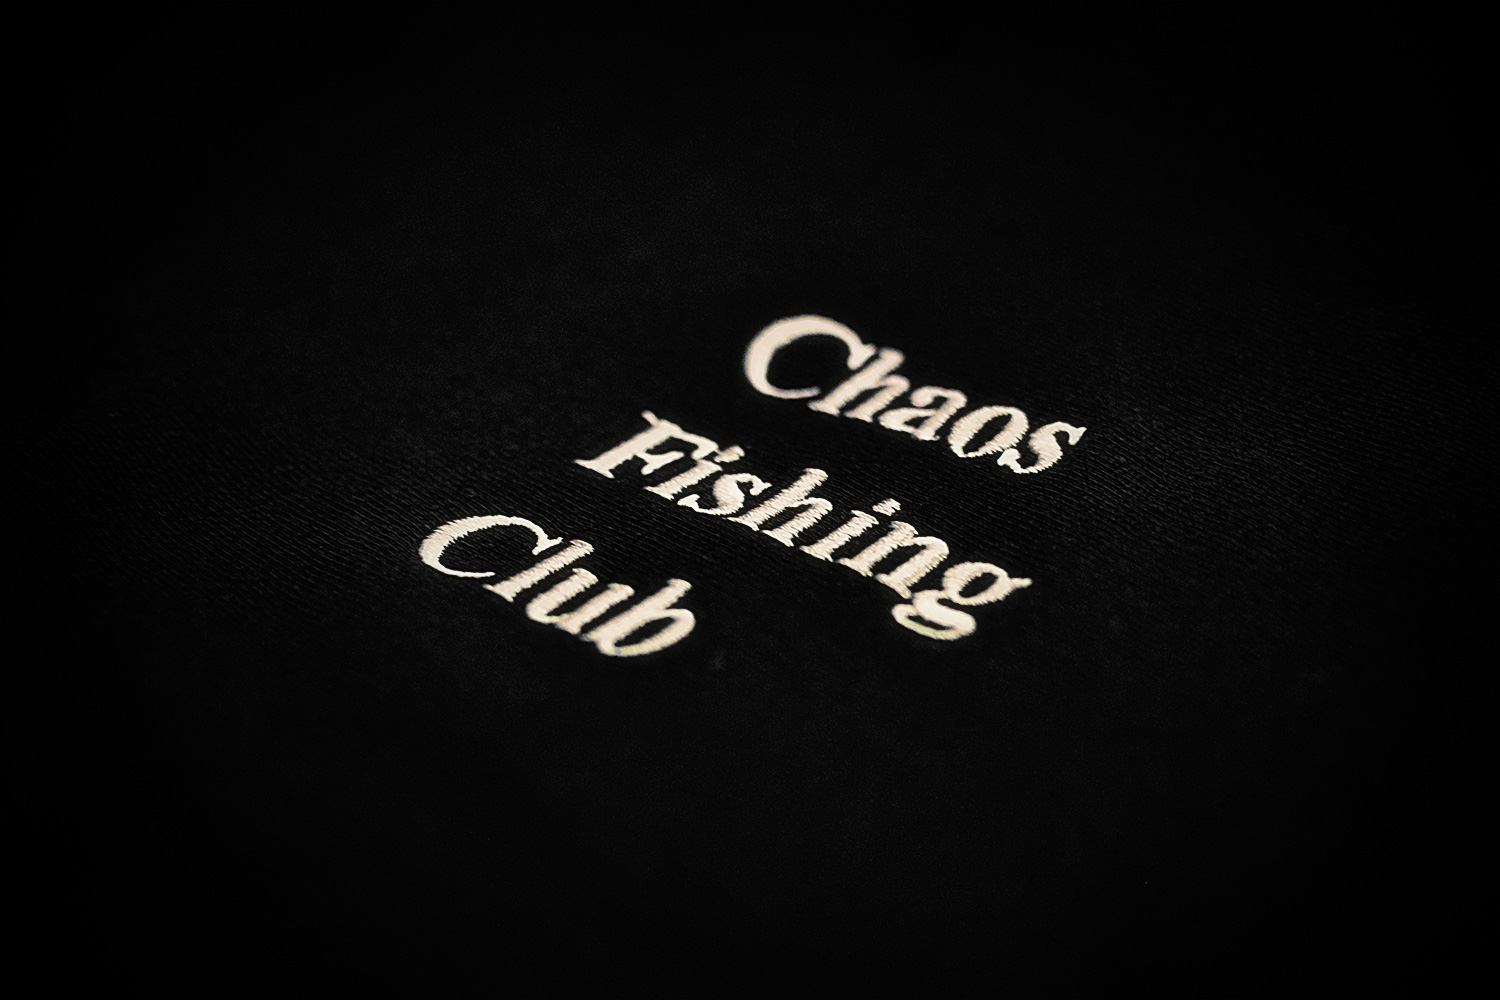 CHAOS FISHING CLUB